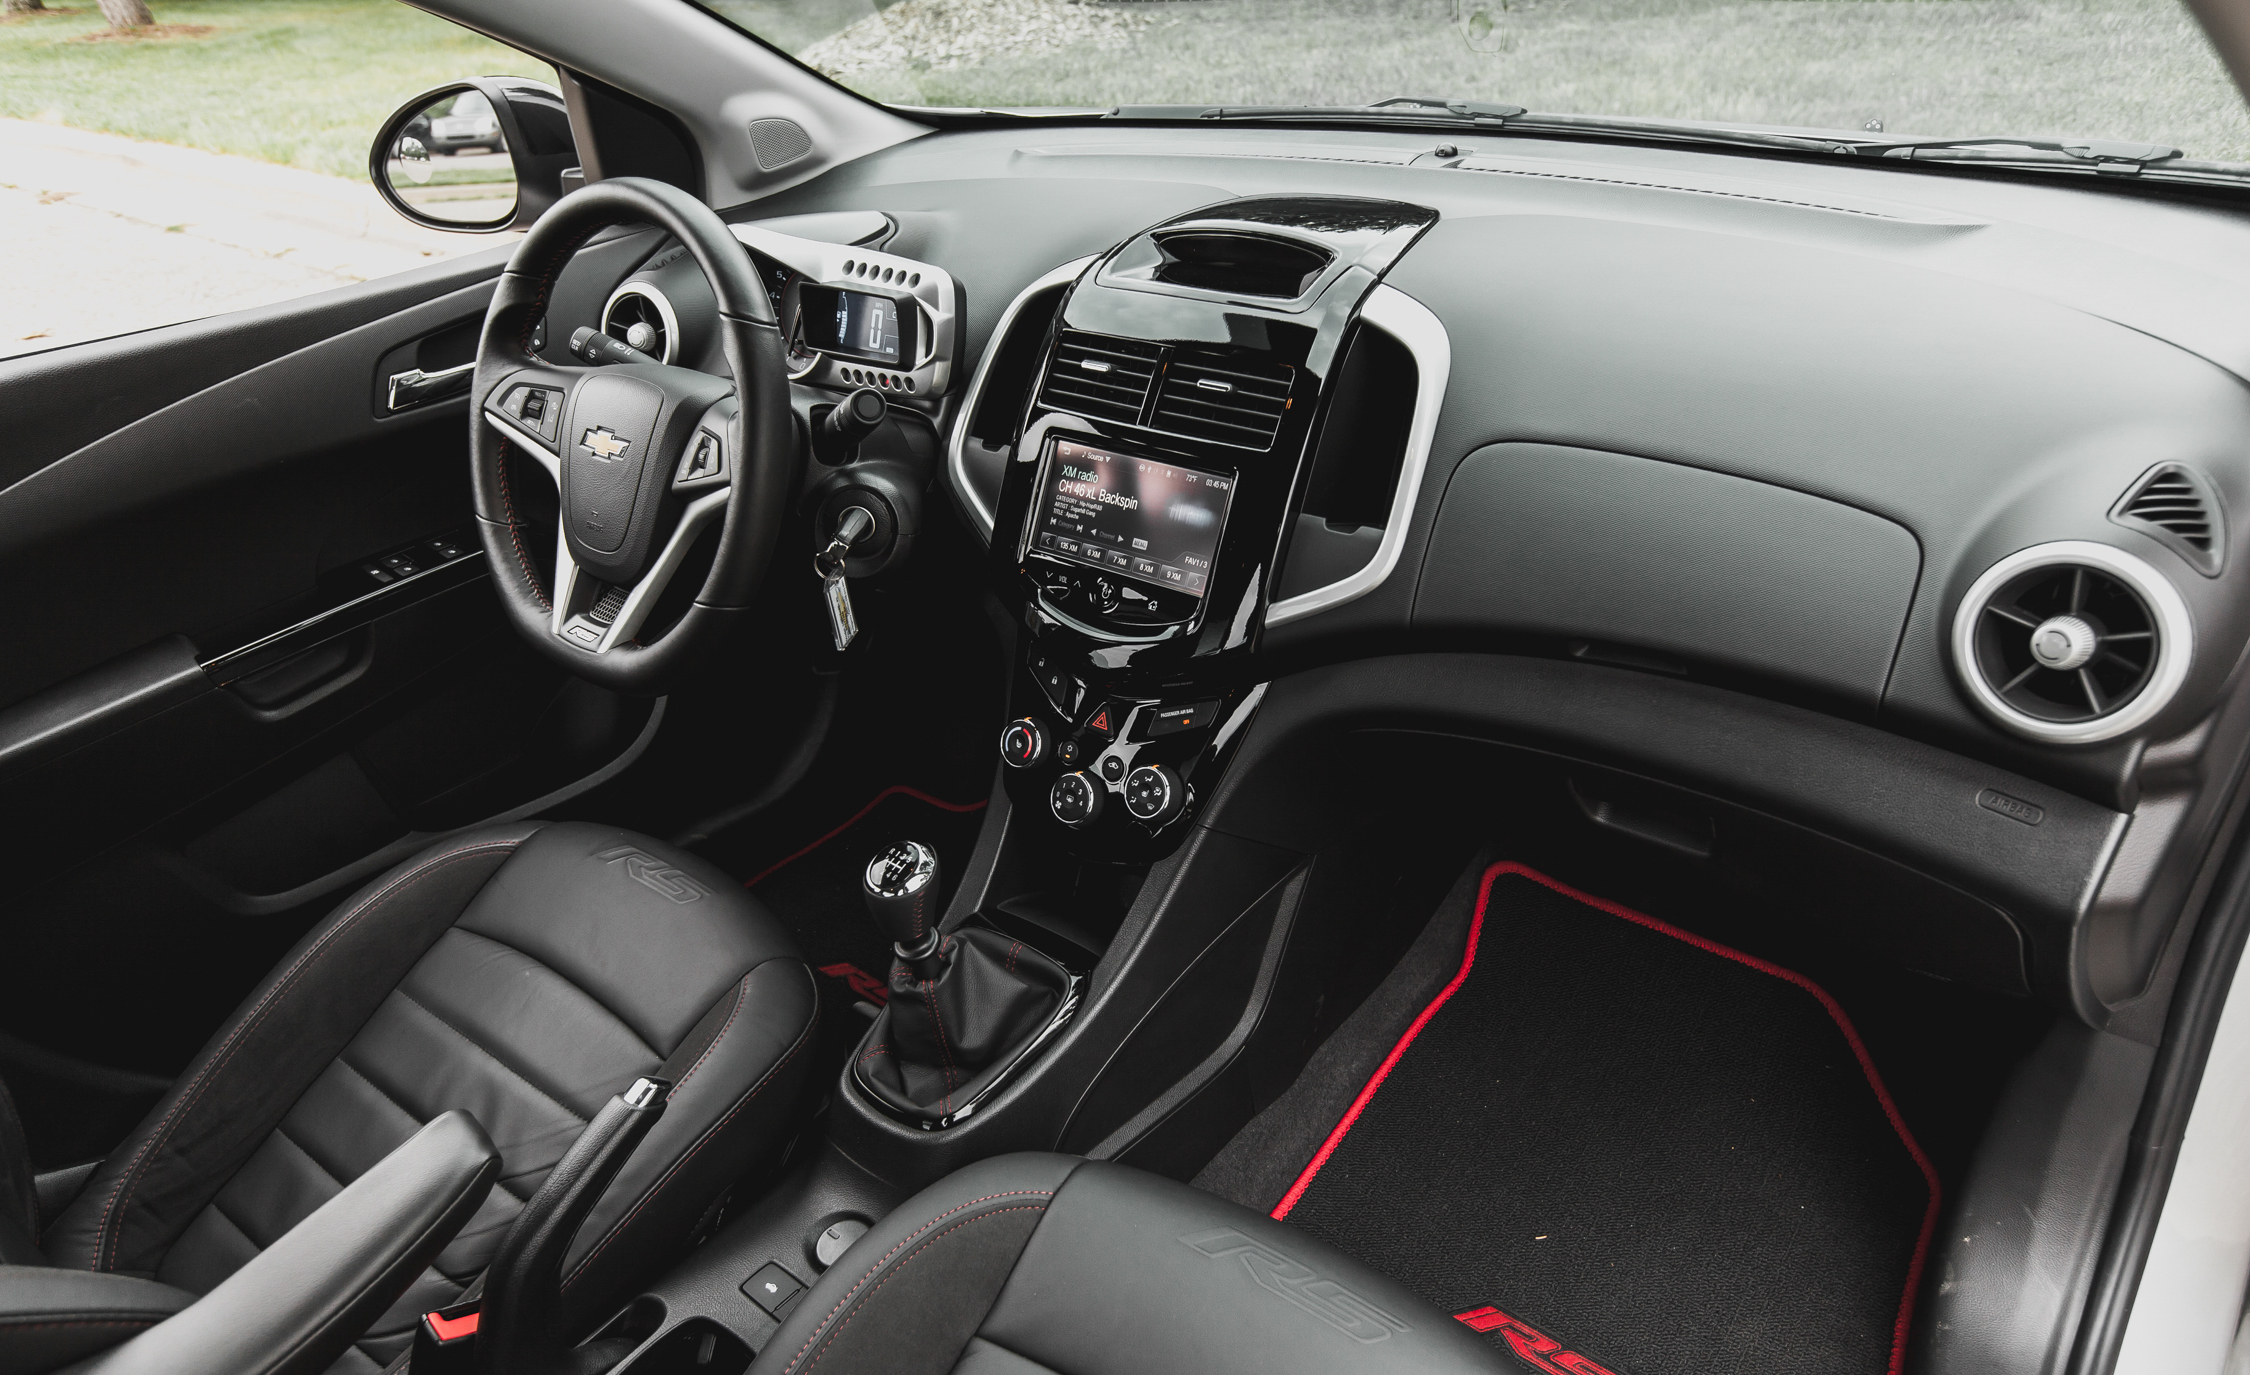 2014 Chevrolet Sonic RS Sedan Interior (Photo 19 of 27)